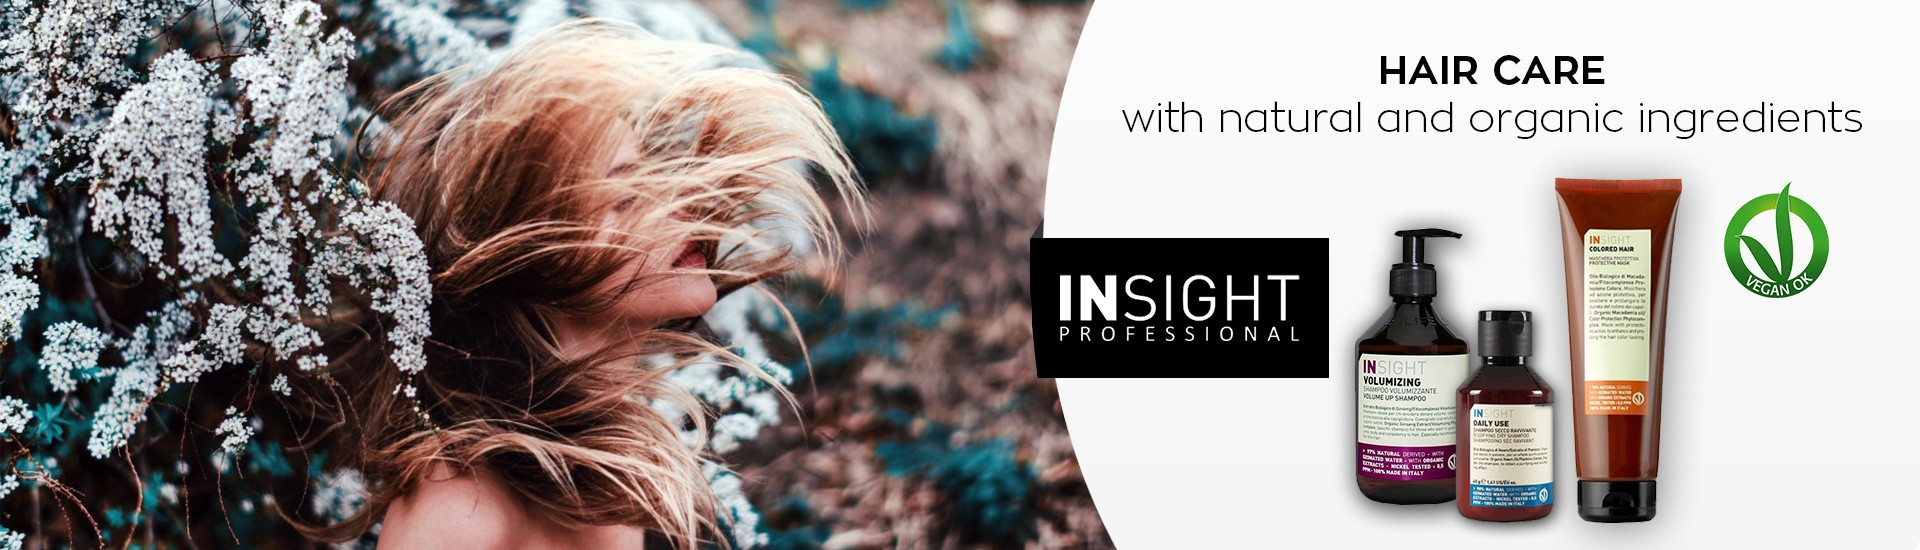 Insight Hair Care with natural and organic ingredients